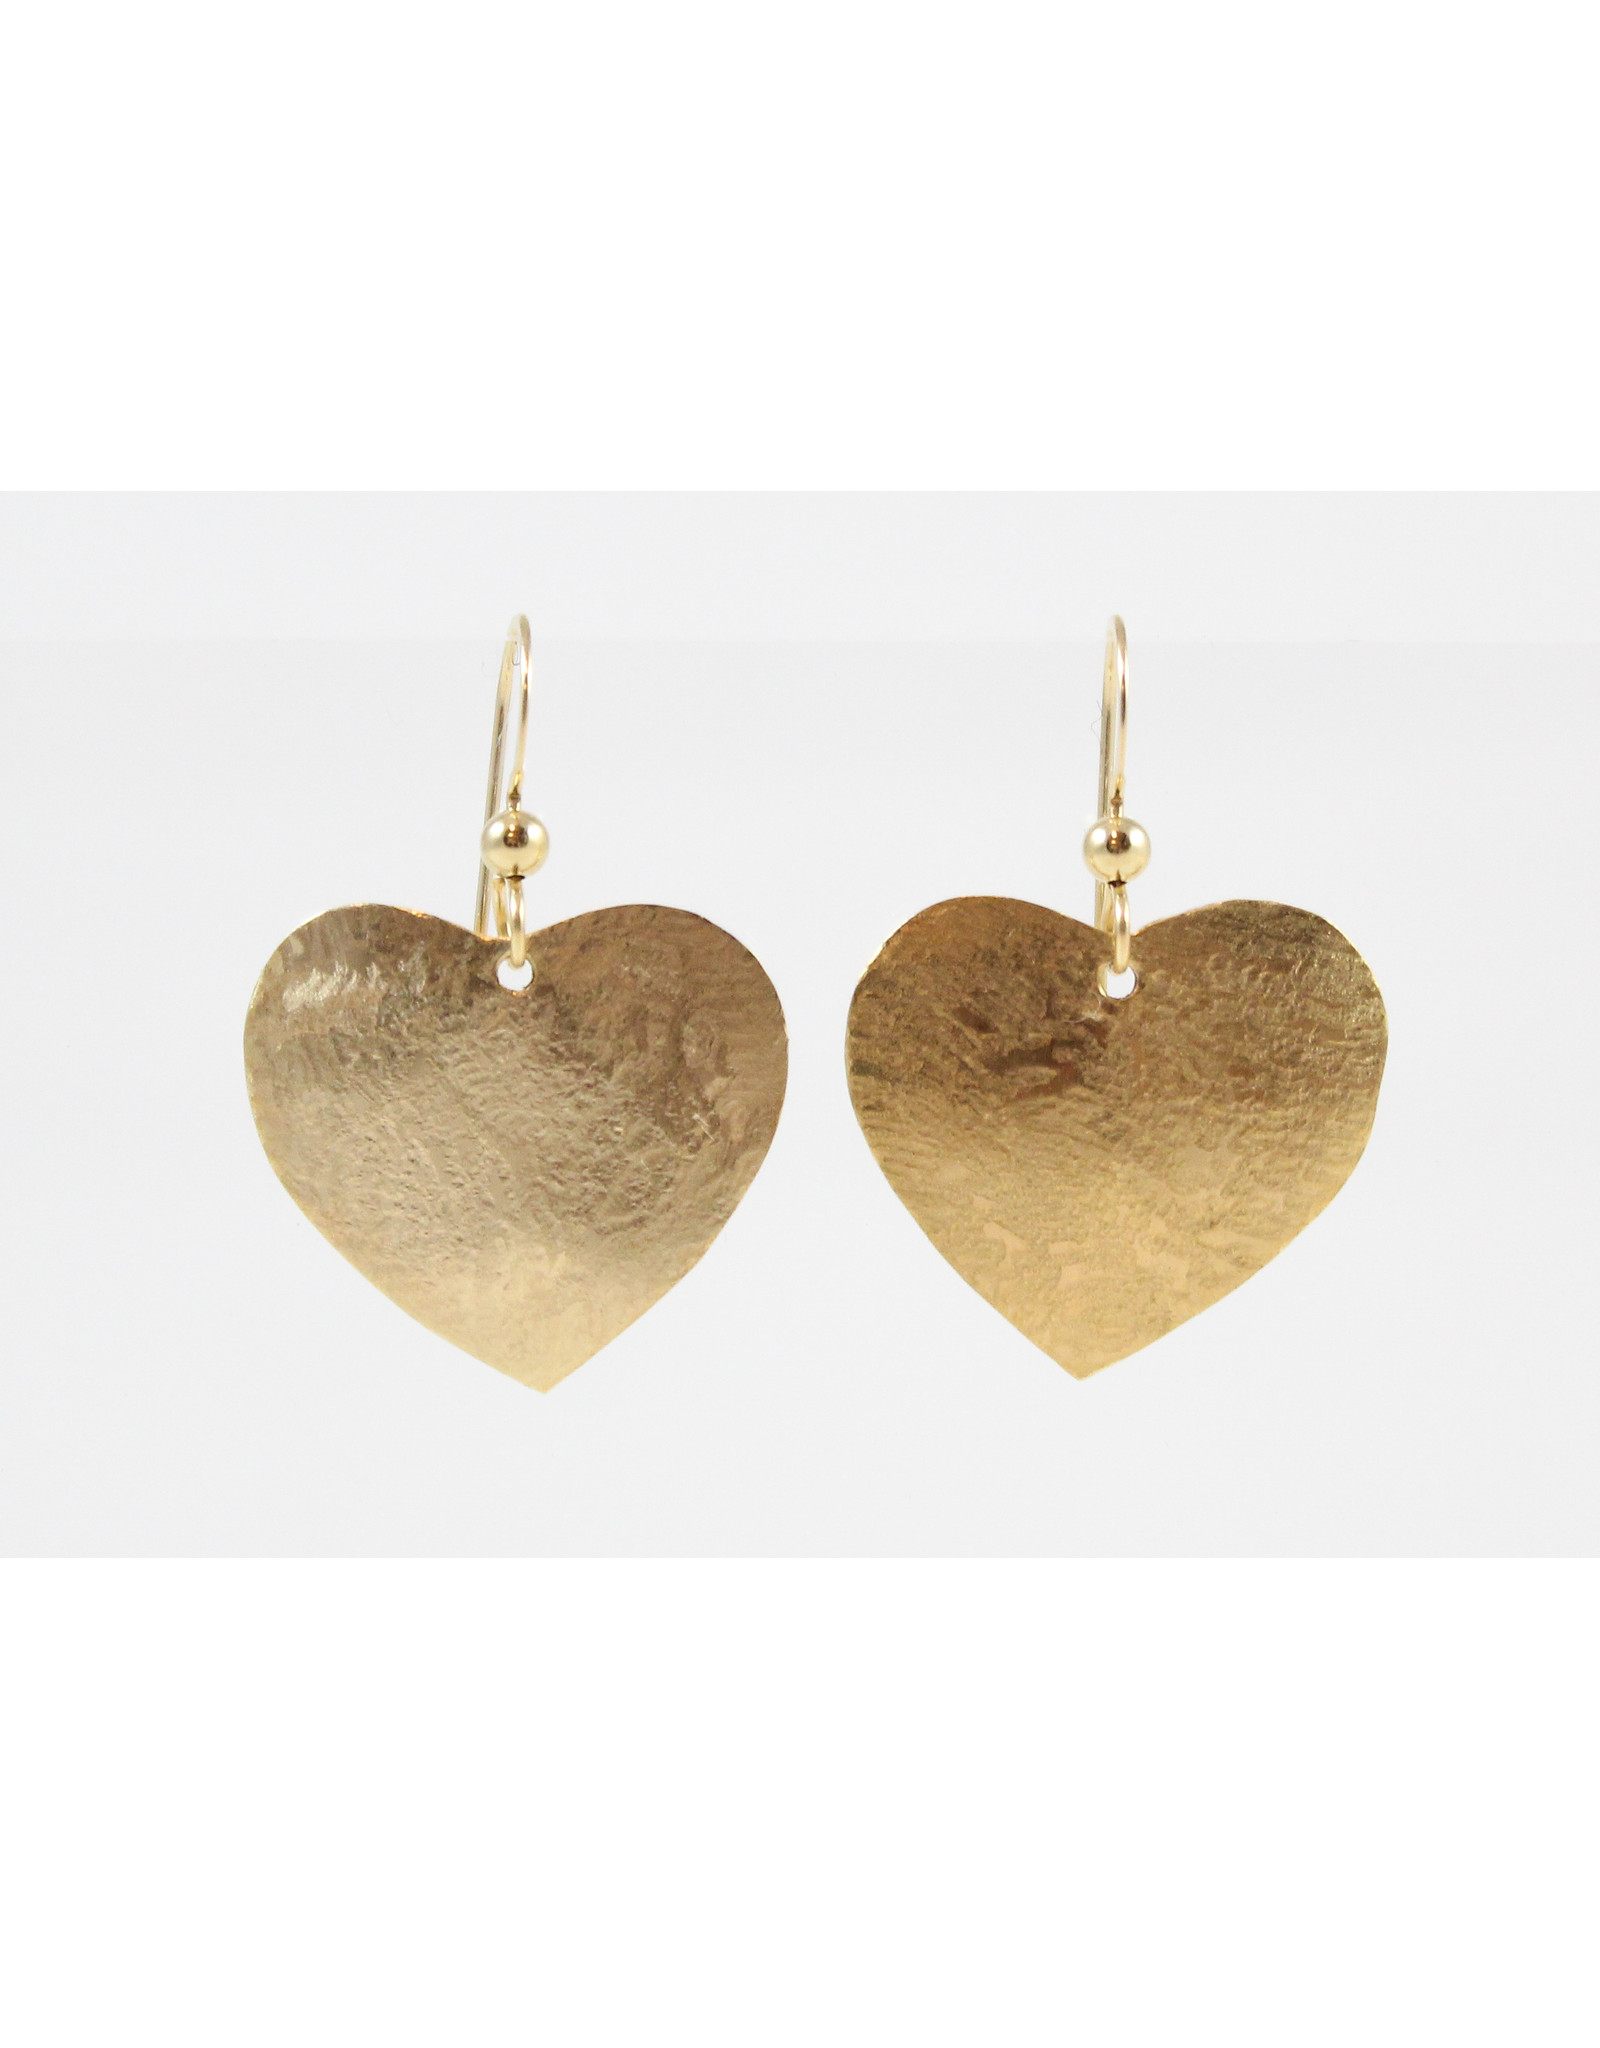 Jim & Judy MacLean Gold-Filled Hearts by Findings For Friends